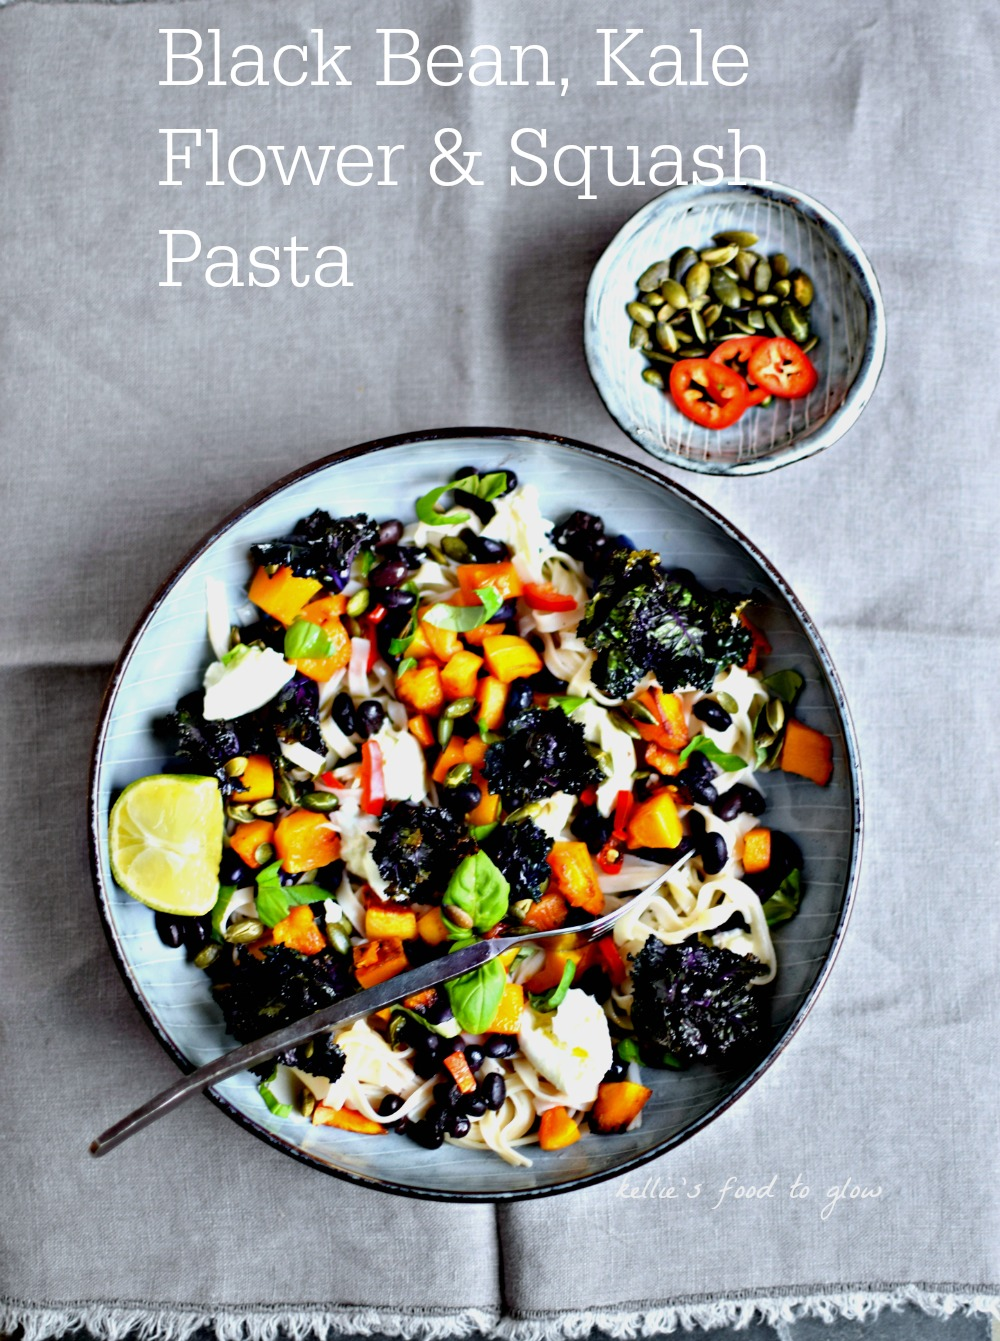 This hearty yet light pasta supper is full of colour and texture, and is perfect for a midweek meal. Easily vegan and gluten-free too.